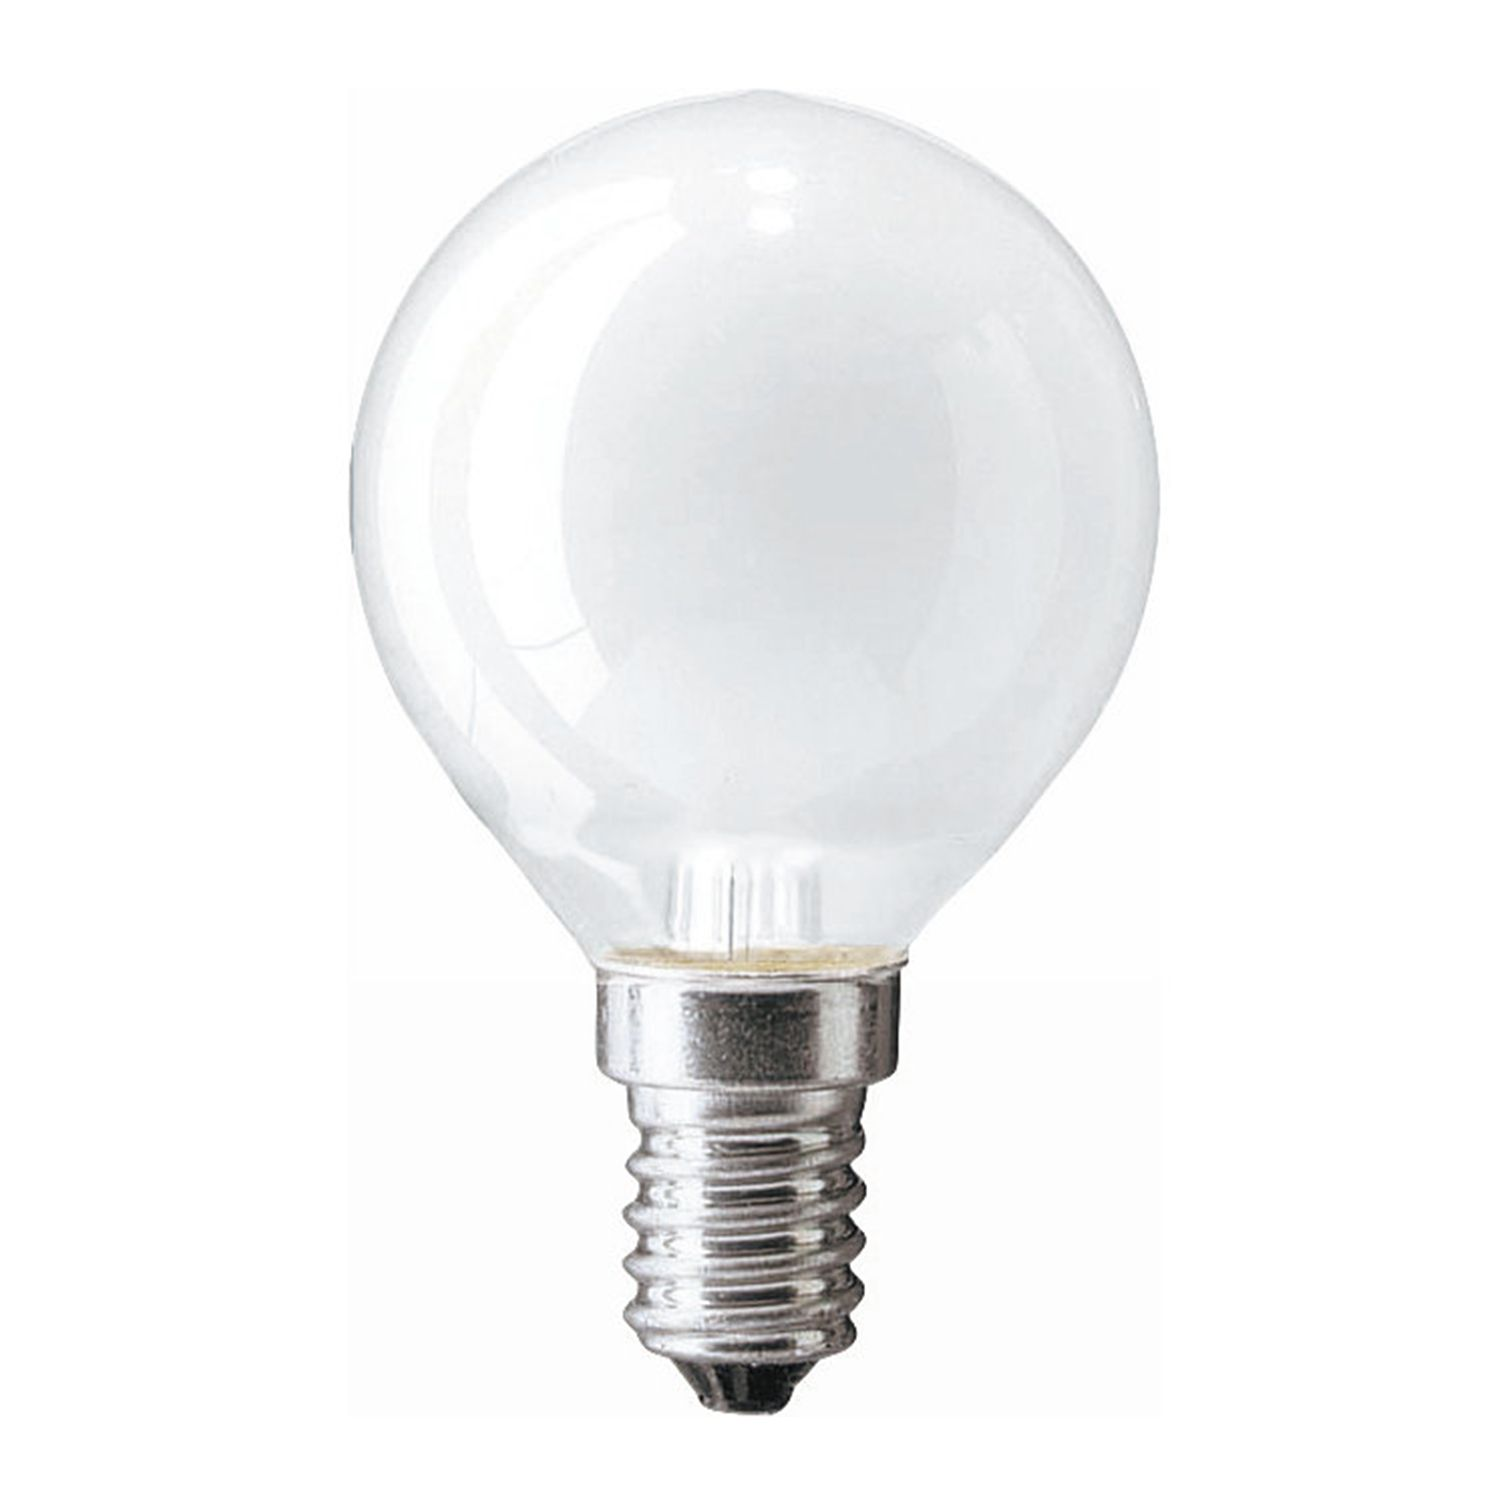 Standard Incandescent Bulb Round Frosted P45 E14 60W 230V